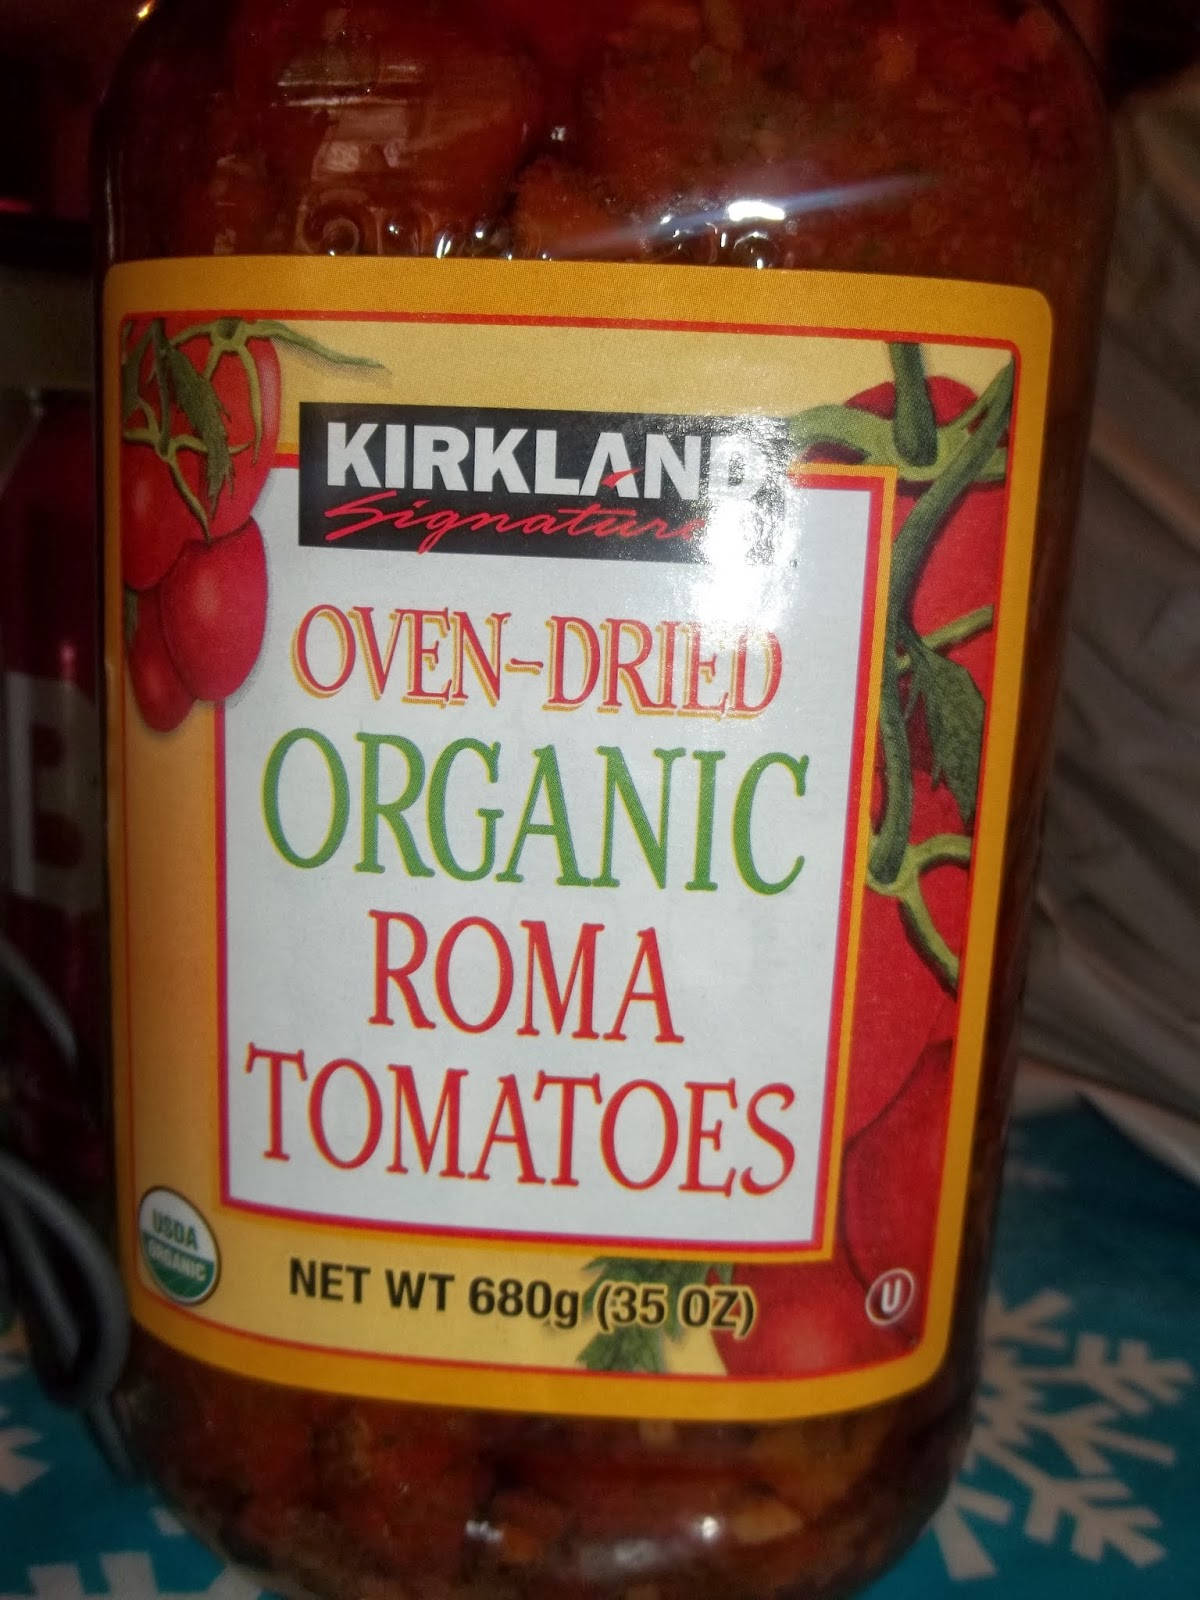 ... Signature Oven Dried Organic Roma Tomatoes - These are so wonderful